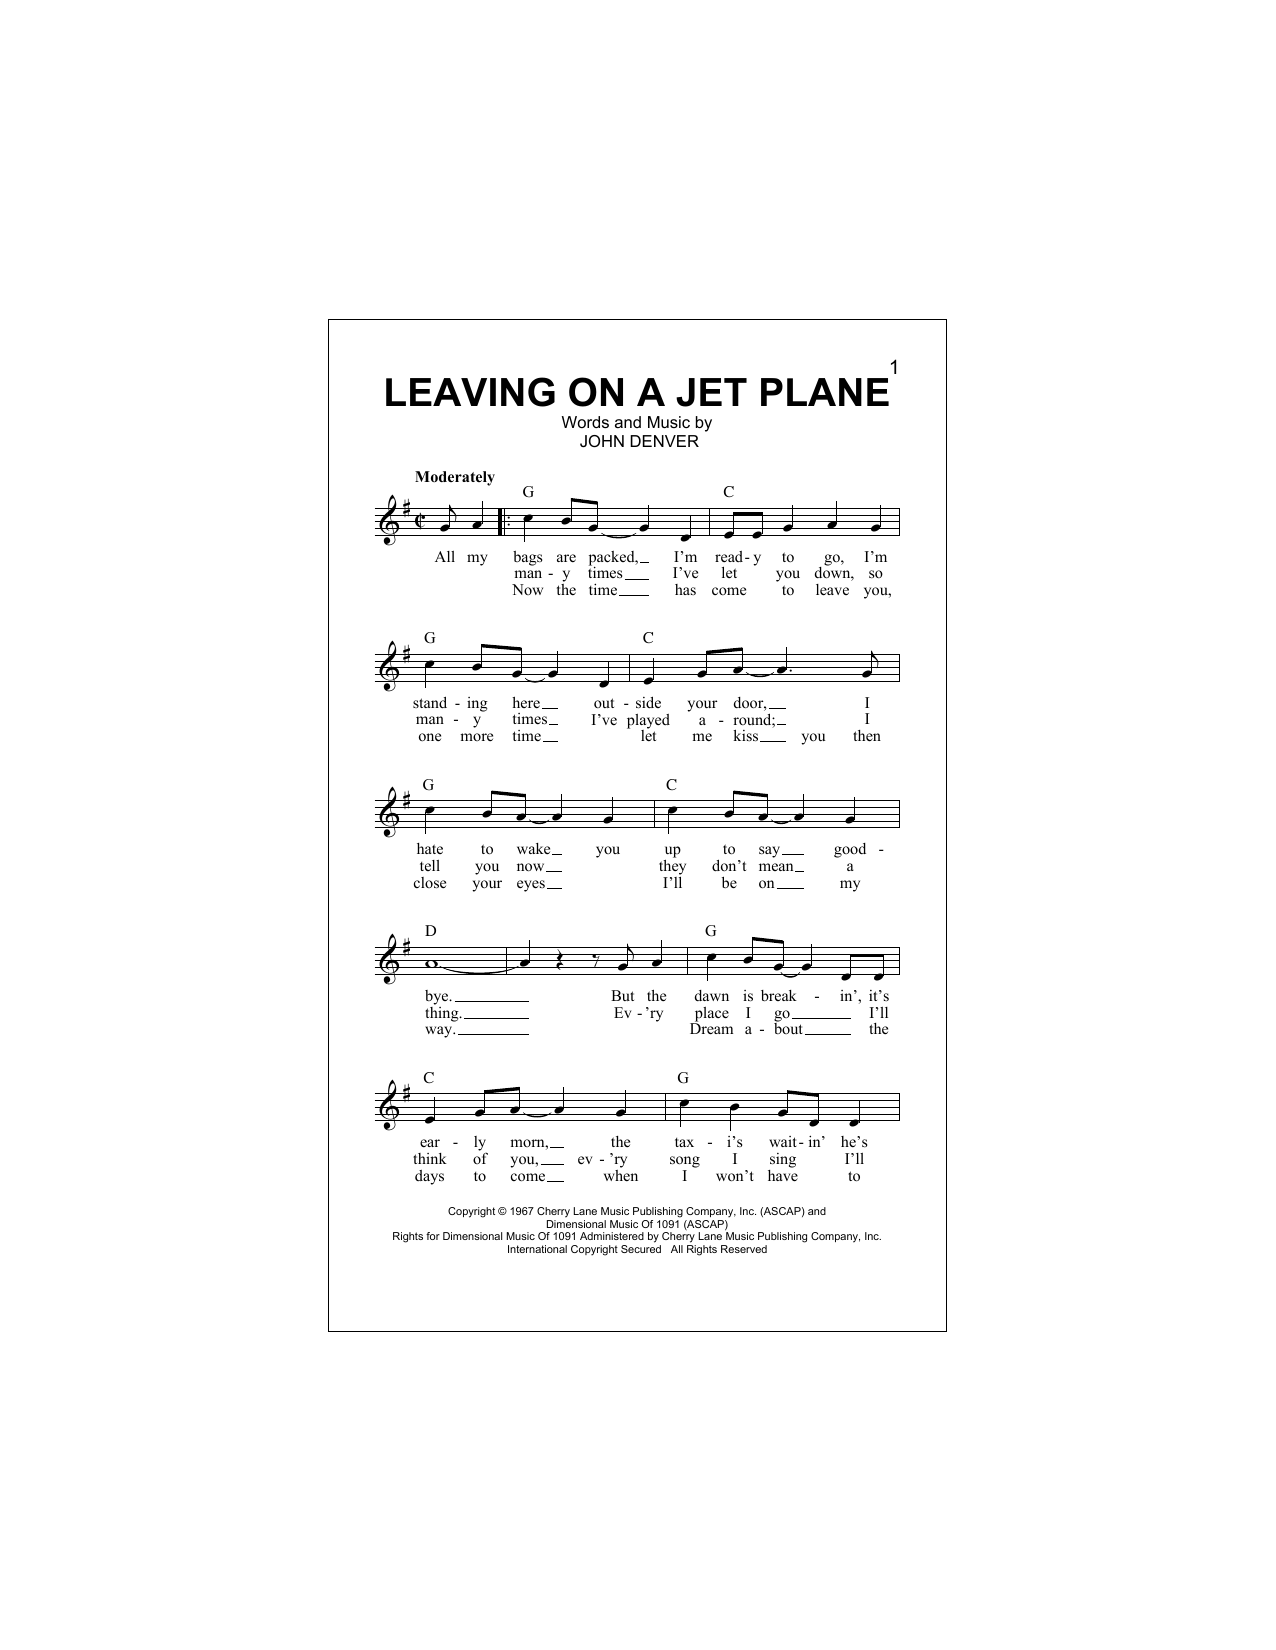 Leaving on a jet plane chords by john denver melody line lyrics john denver leaving on a jet plane melody line lyrics chords hexwebz Gallery